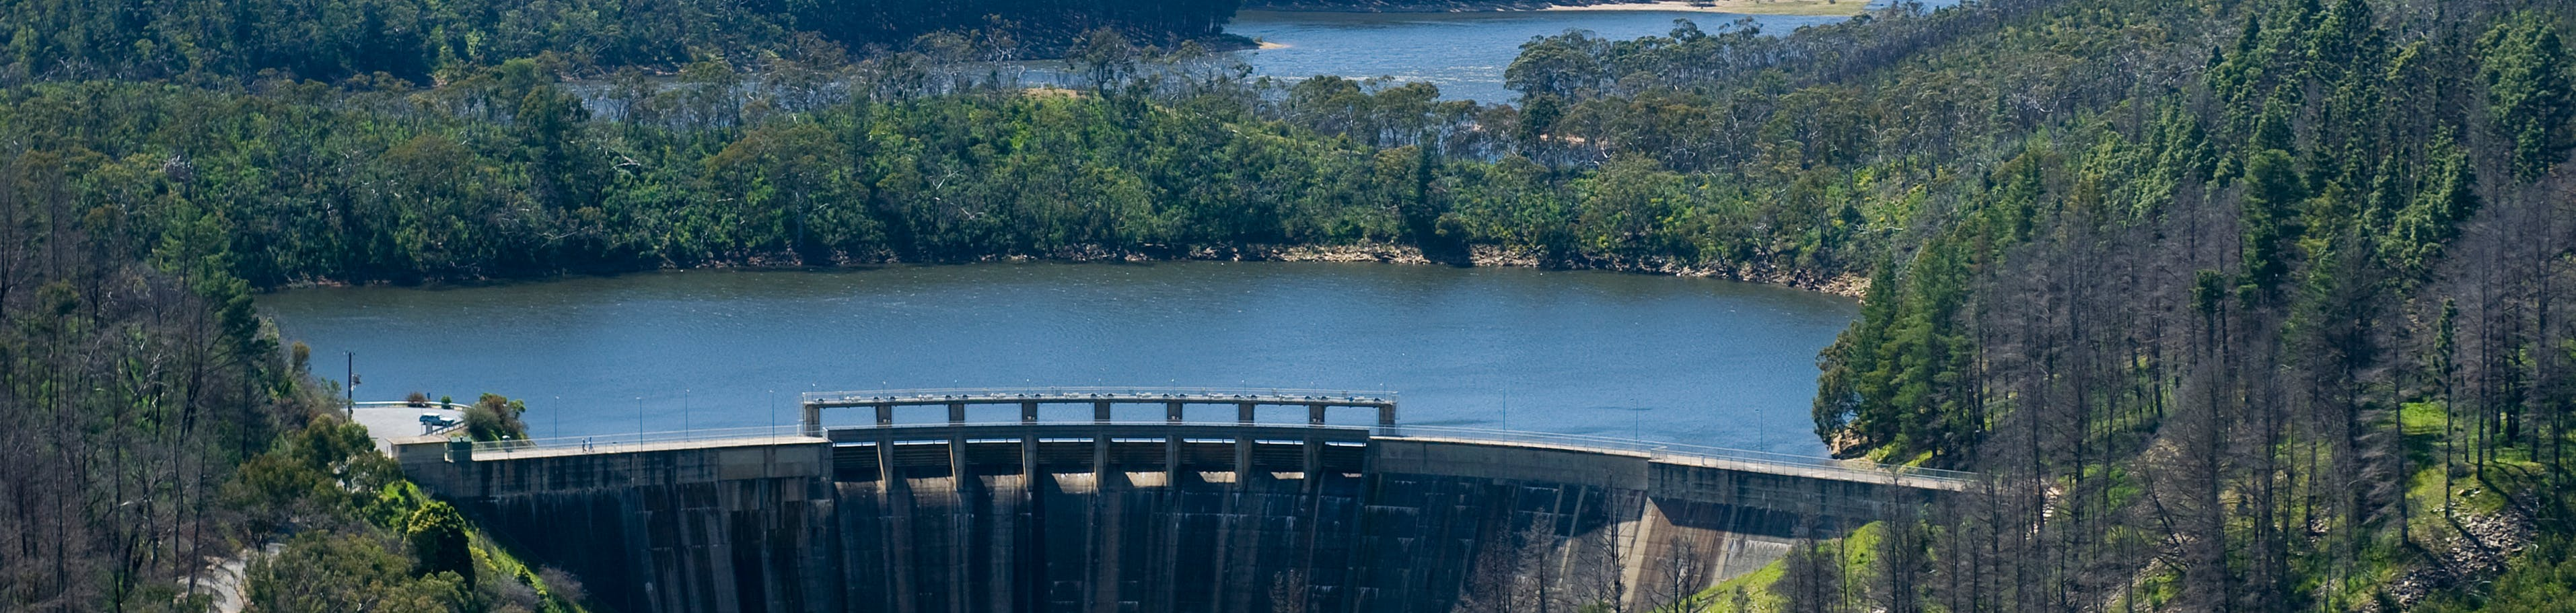 Mount Bold Dam Safety Upgrade Project